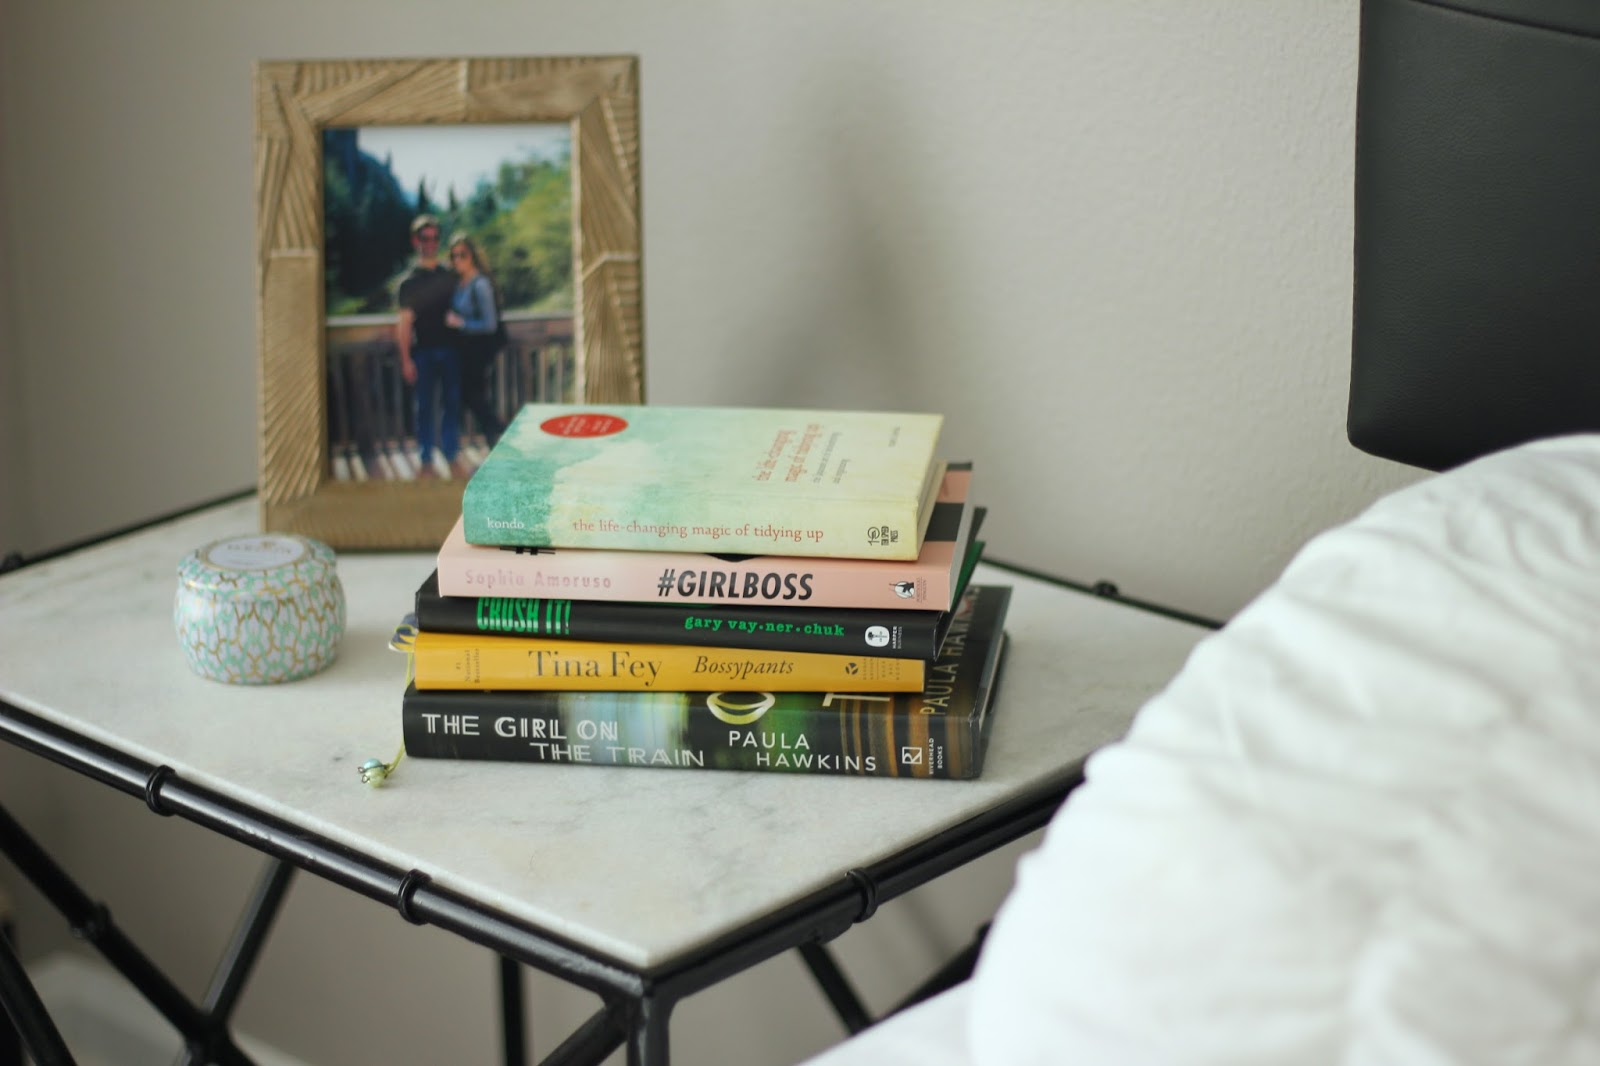 The Books That Every Girl Should Have On Her Nightstand - Bossypants, #Girlboss, The Girl on the Train, Crush it!, The Life-Changing Magic Of Tidying Up